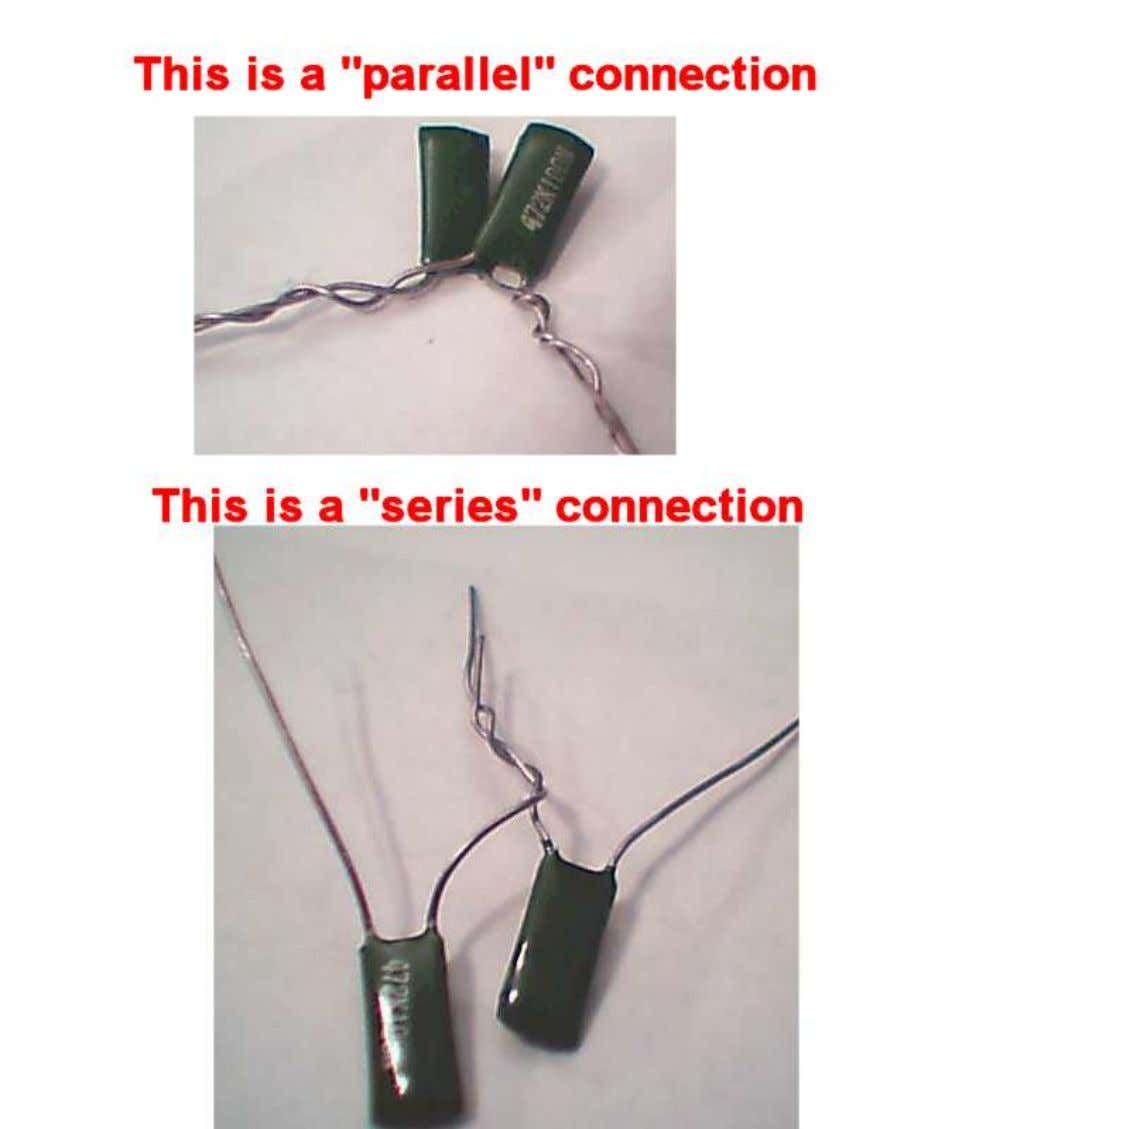 Different types of connections—they will yield different results!